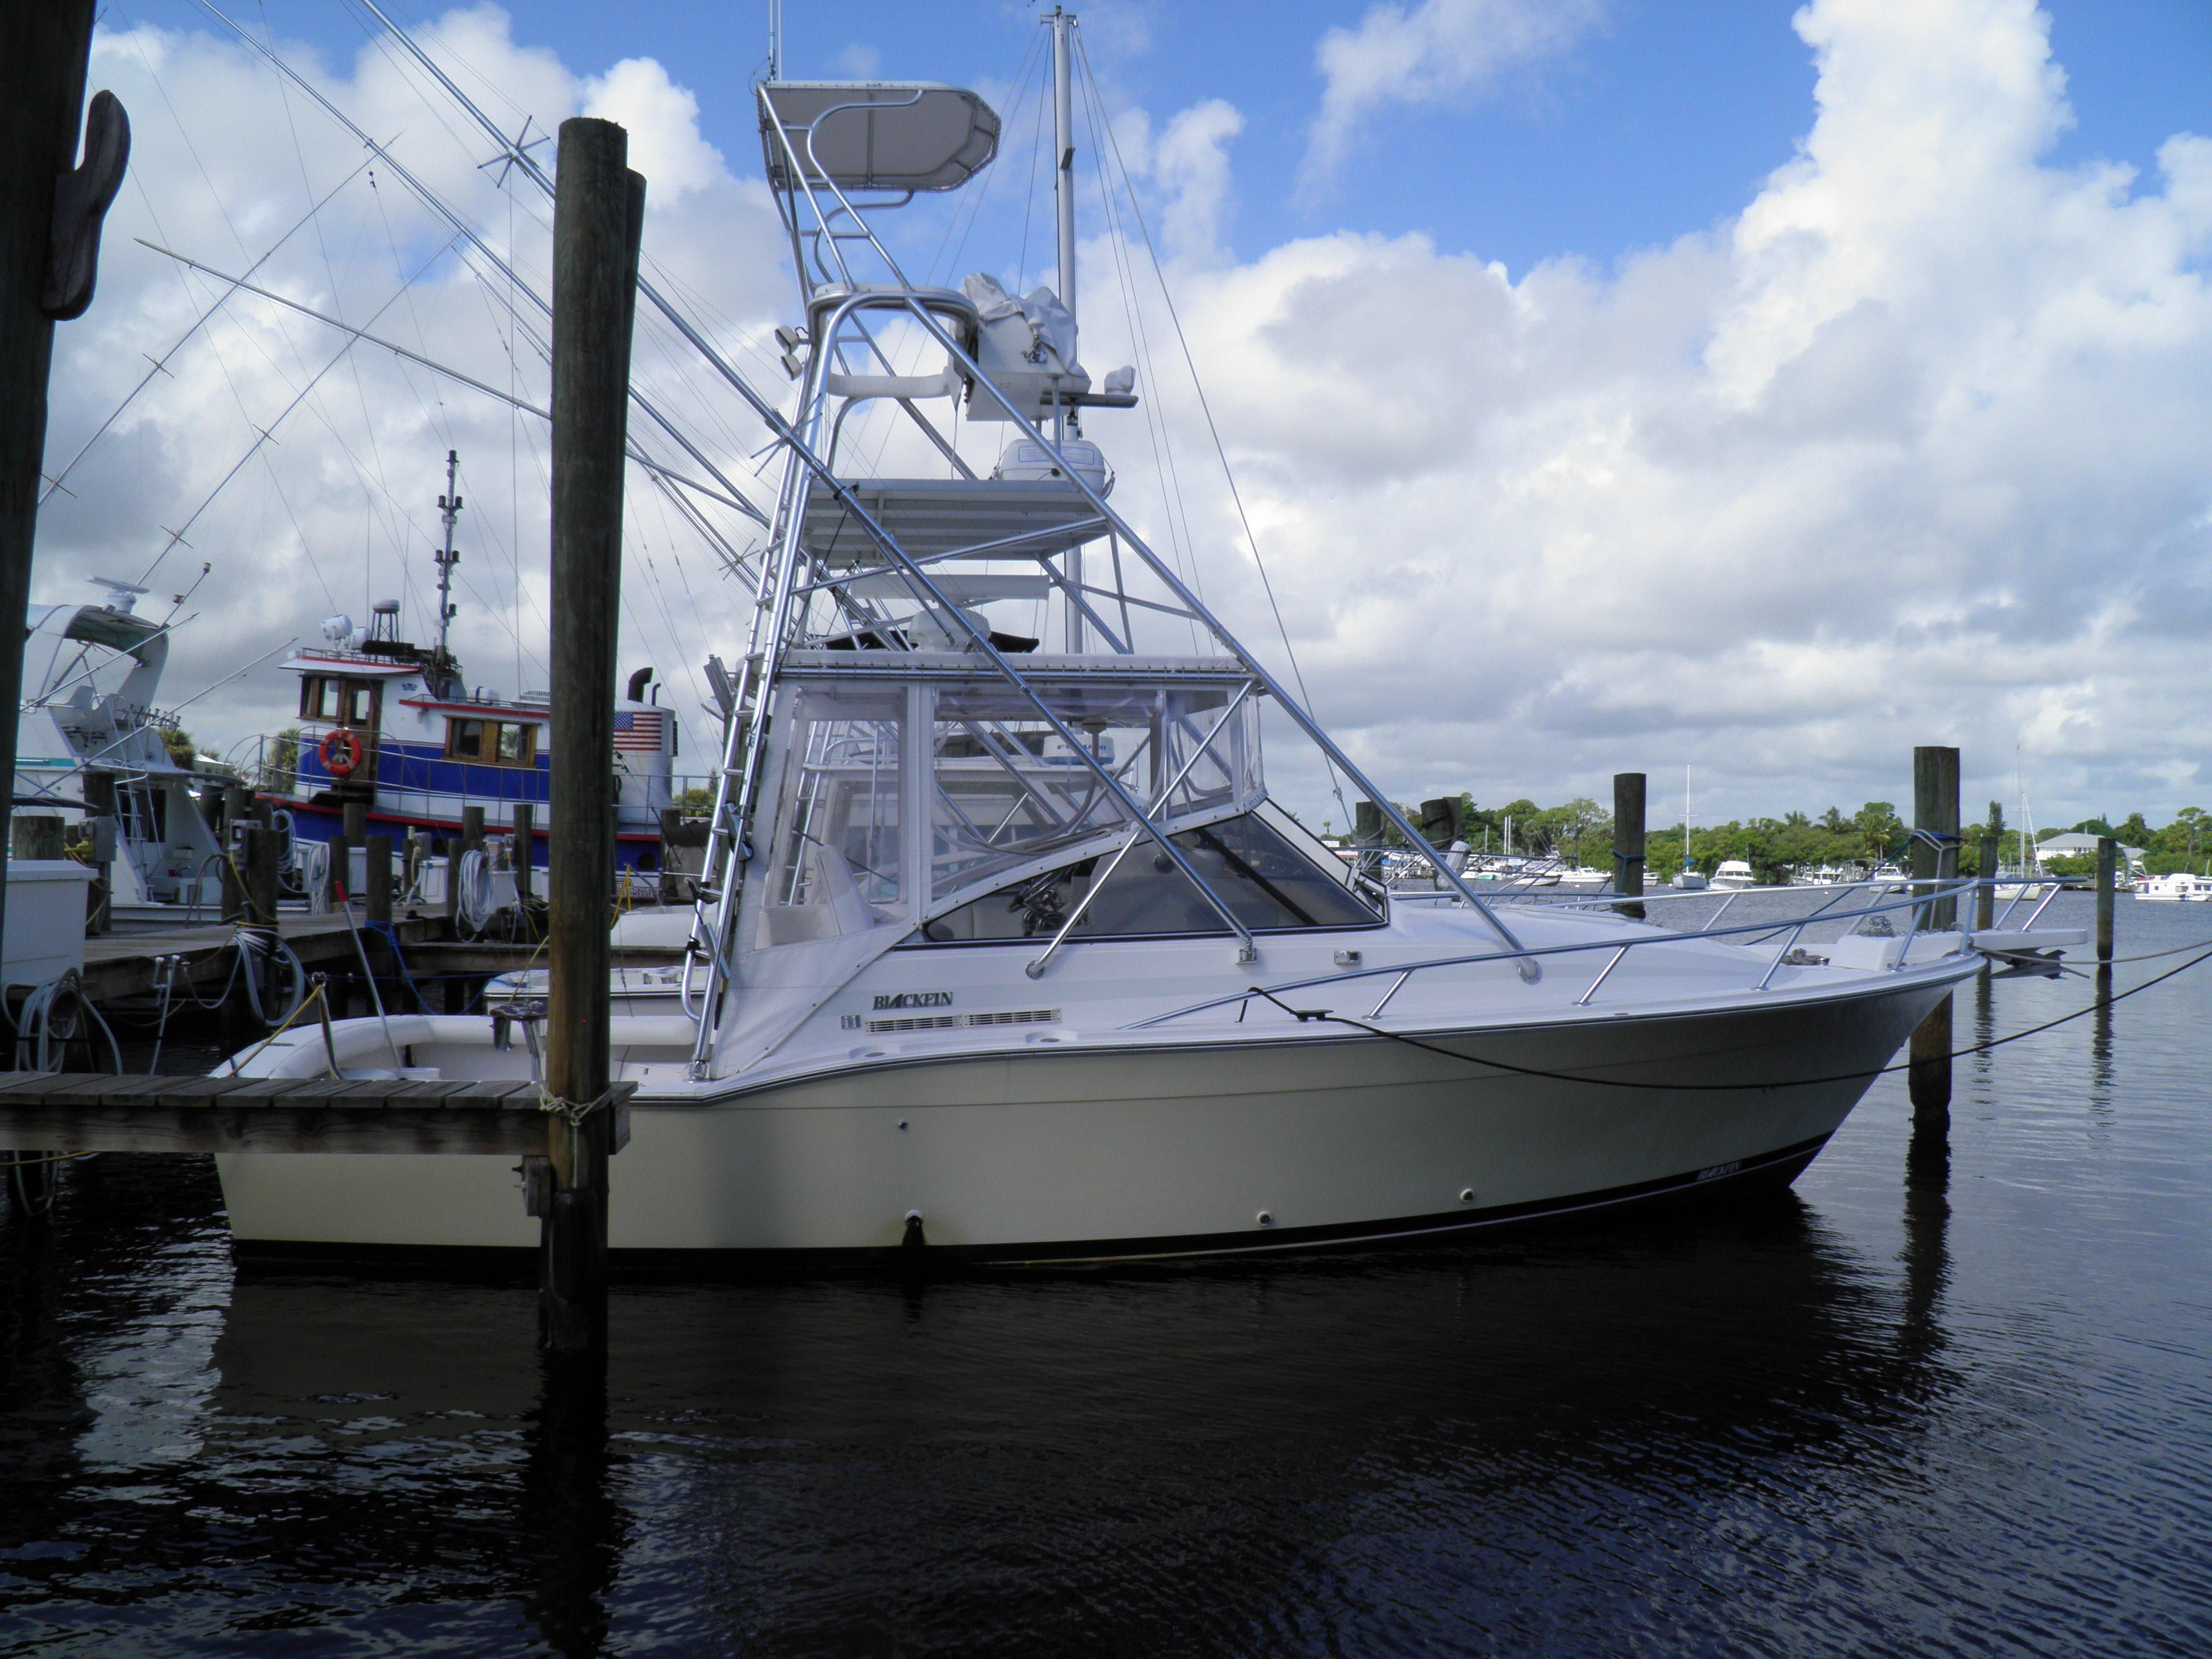 World Cat Boats For Sale >> 1996 Blackfin 31 Combi Power Boat For Sale - www